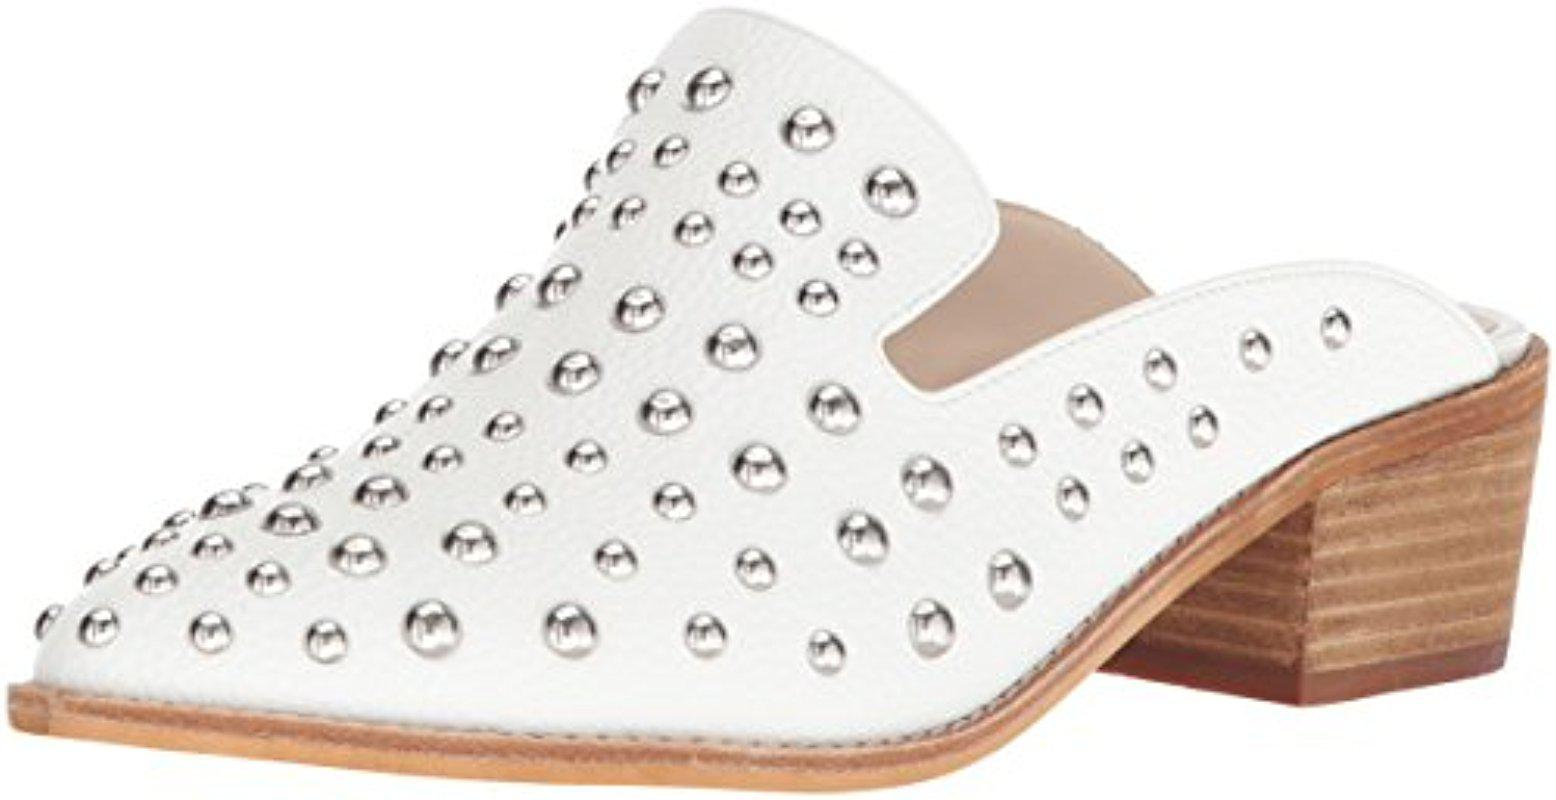 Chinese Laundry Women's Mollie Studded Loafer Mule wd9oiIA6Qu